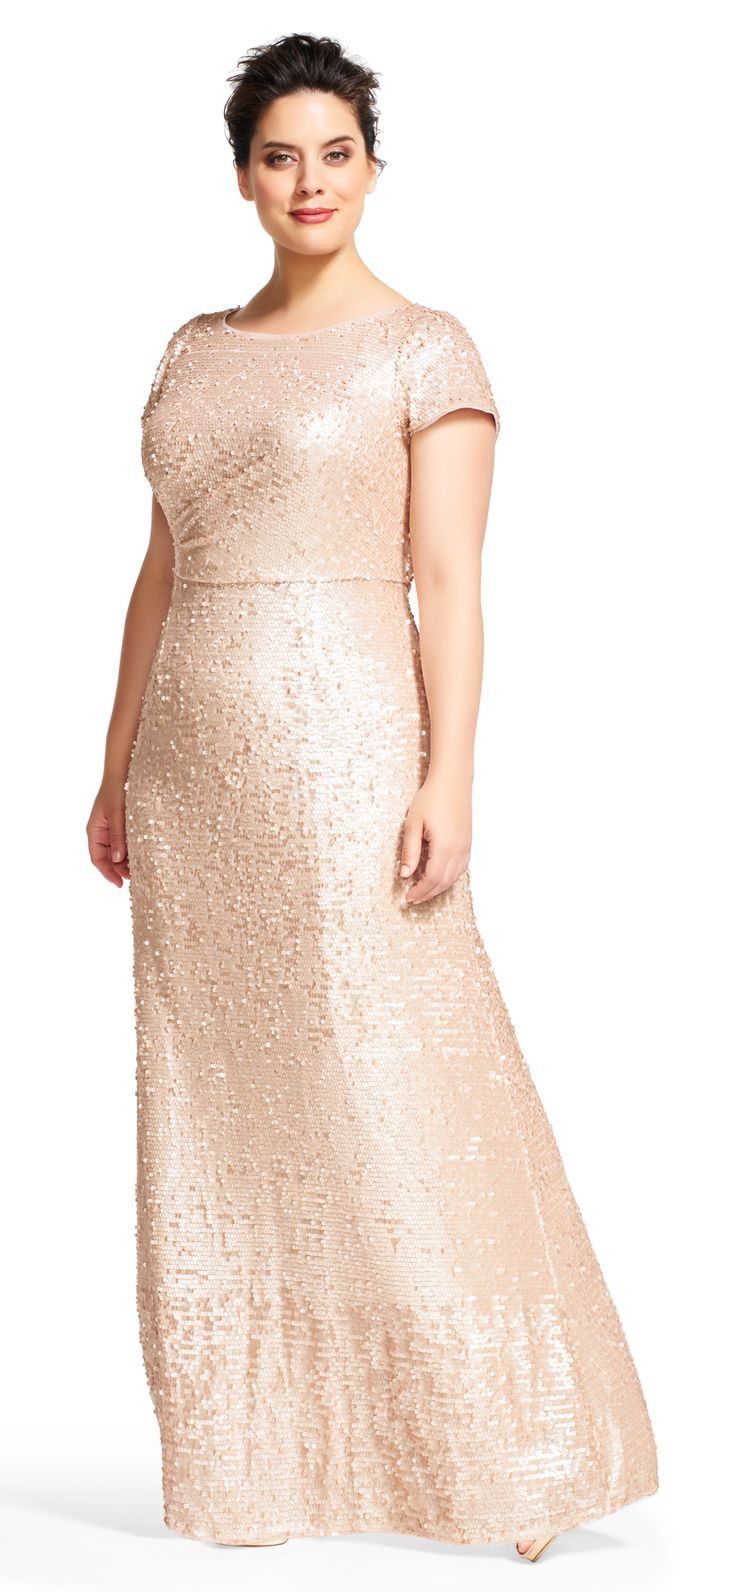 http://www.adriannapapell.com/dresses/short-sleeve-sequin-gown-889448910184.html